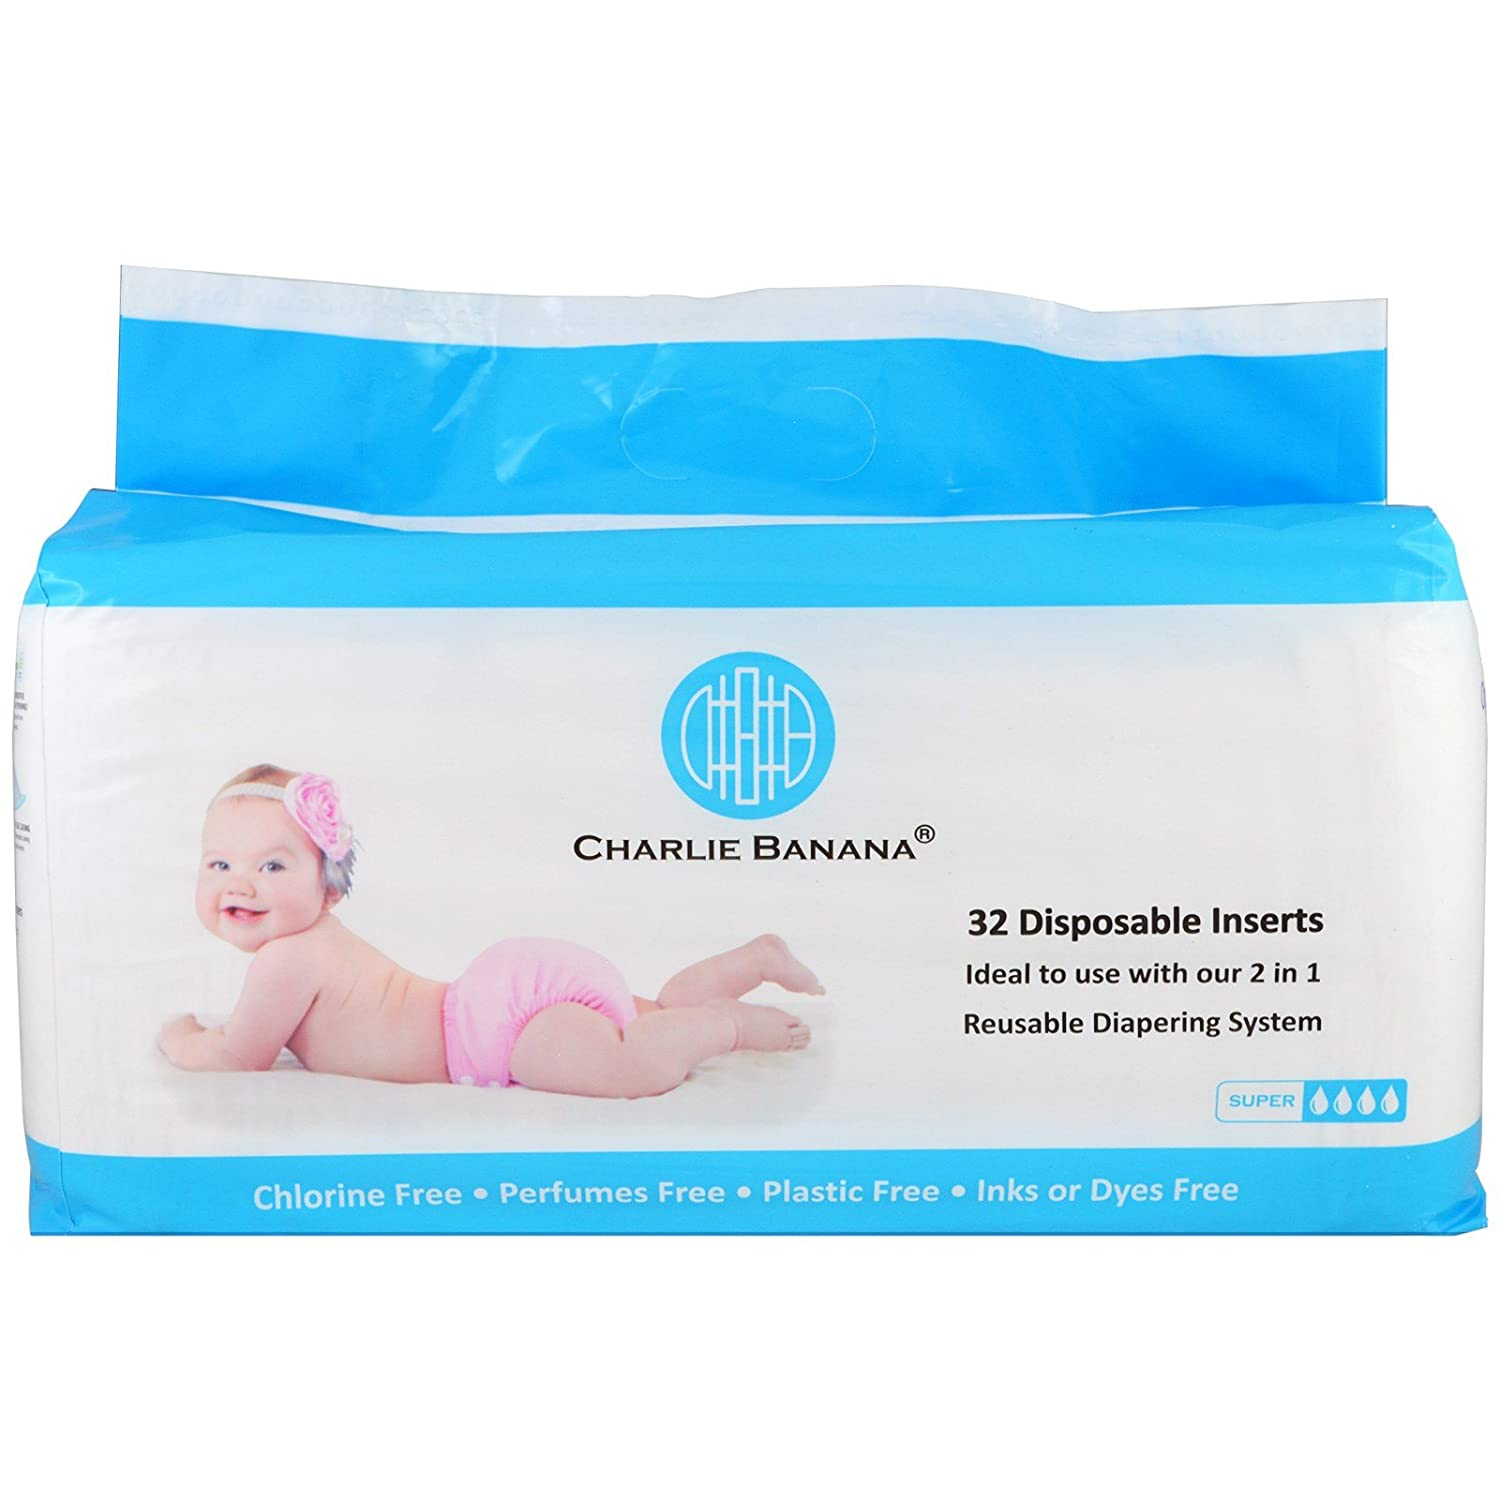 Amazon.com: Charlie Banana Disposable Inserts Reusable Diapering System 32 Inserts: Health & Personal Care